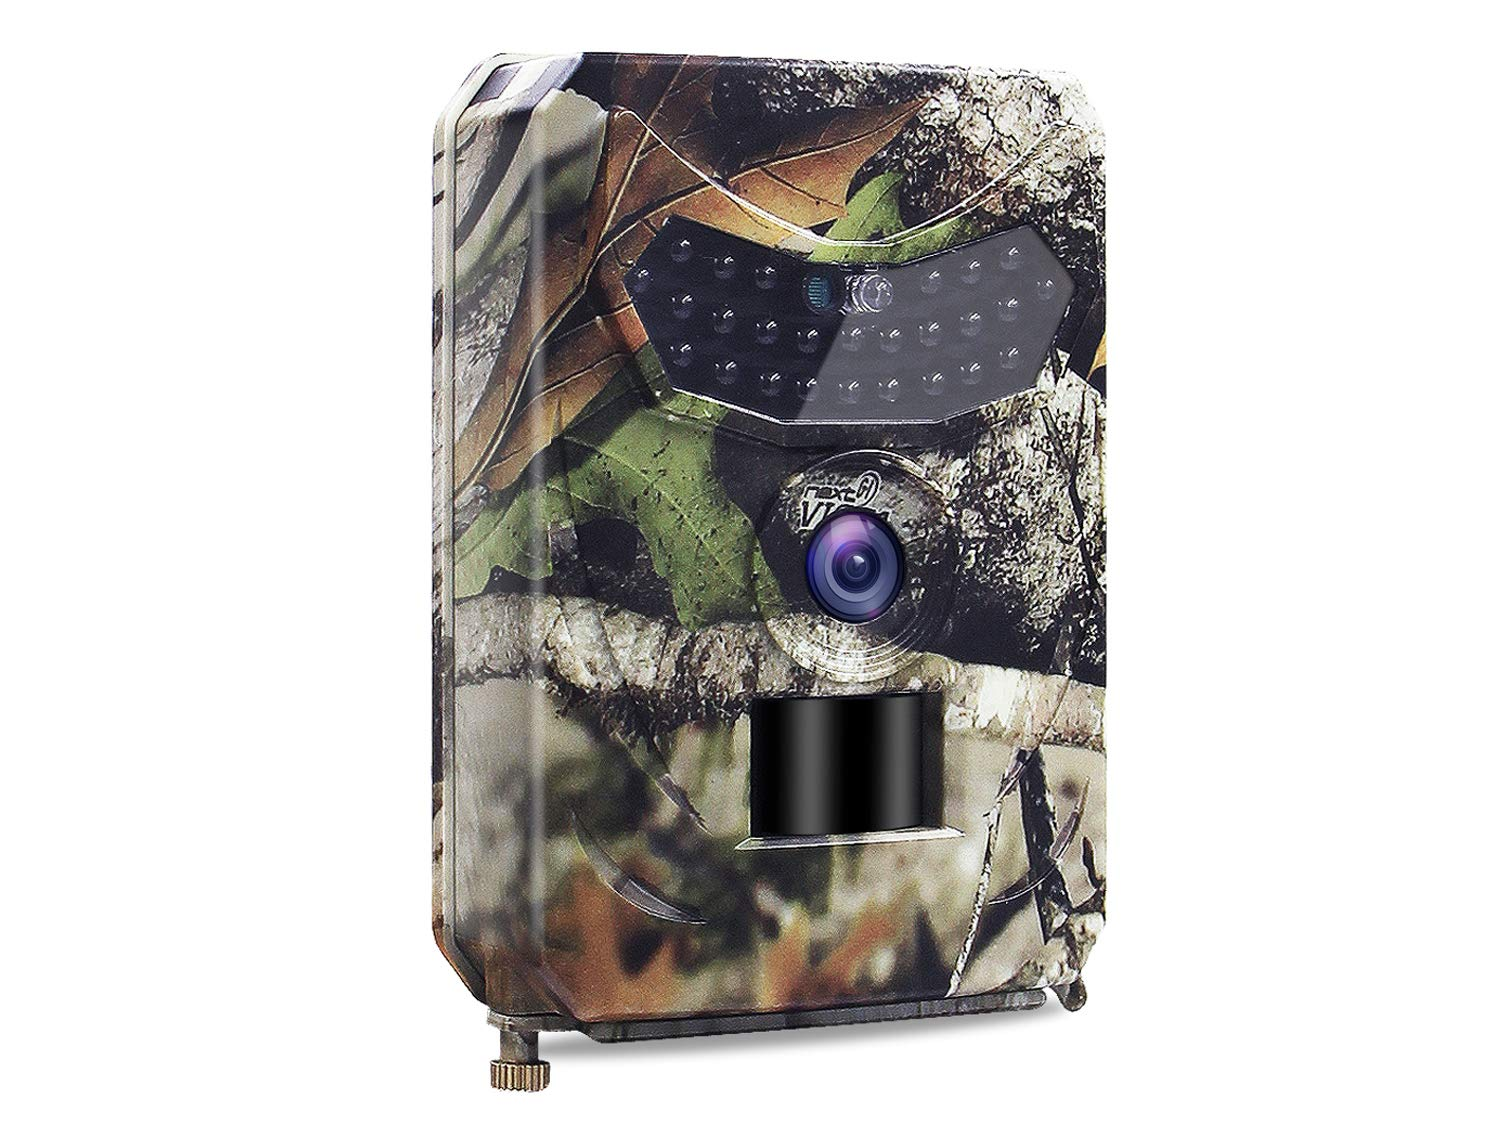 SUNNZO Trail Camera 1080P 12MP both Day&Night,Hunting Scouting Cam for Wildlife Monitoring with 120°Detecting Range…